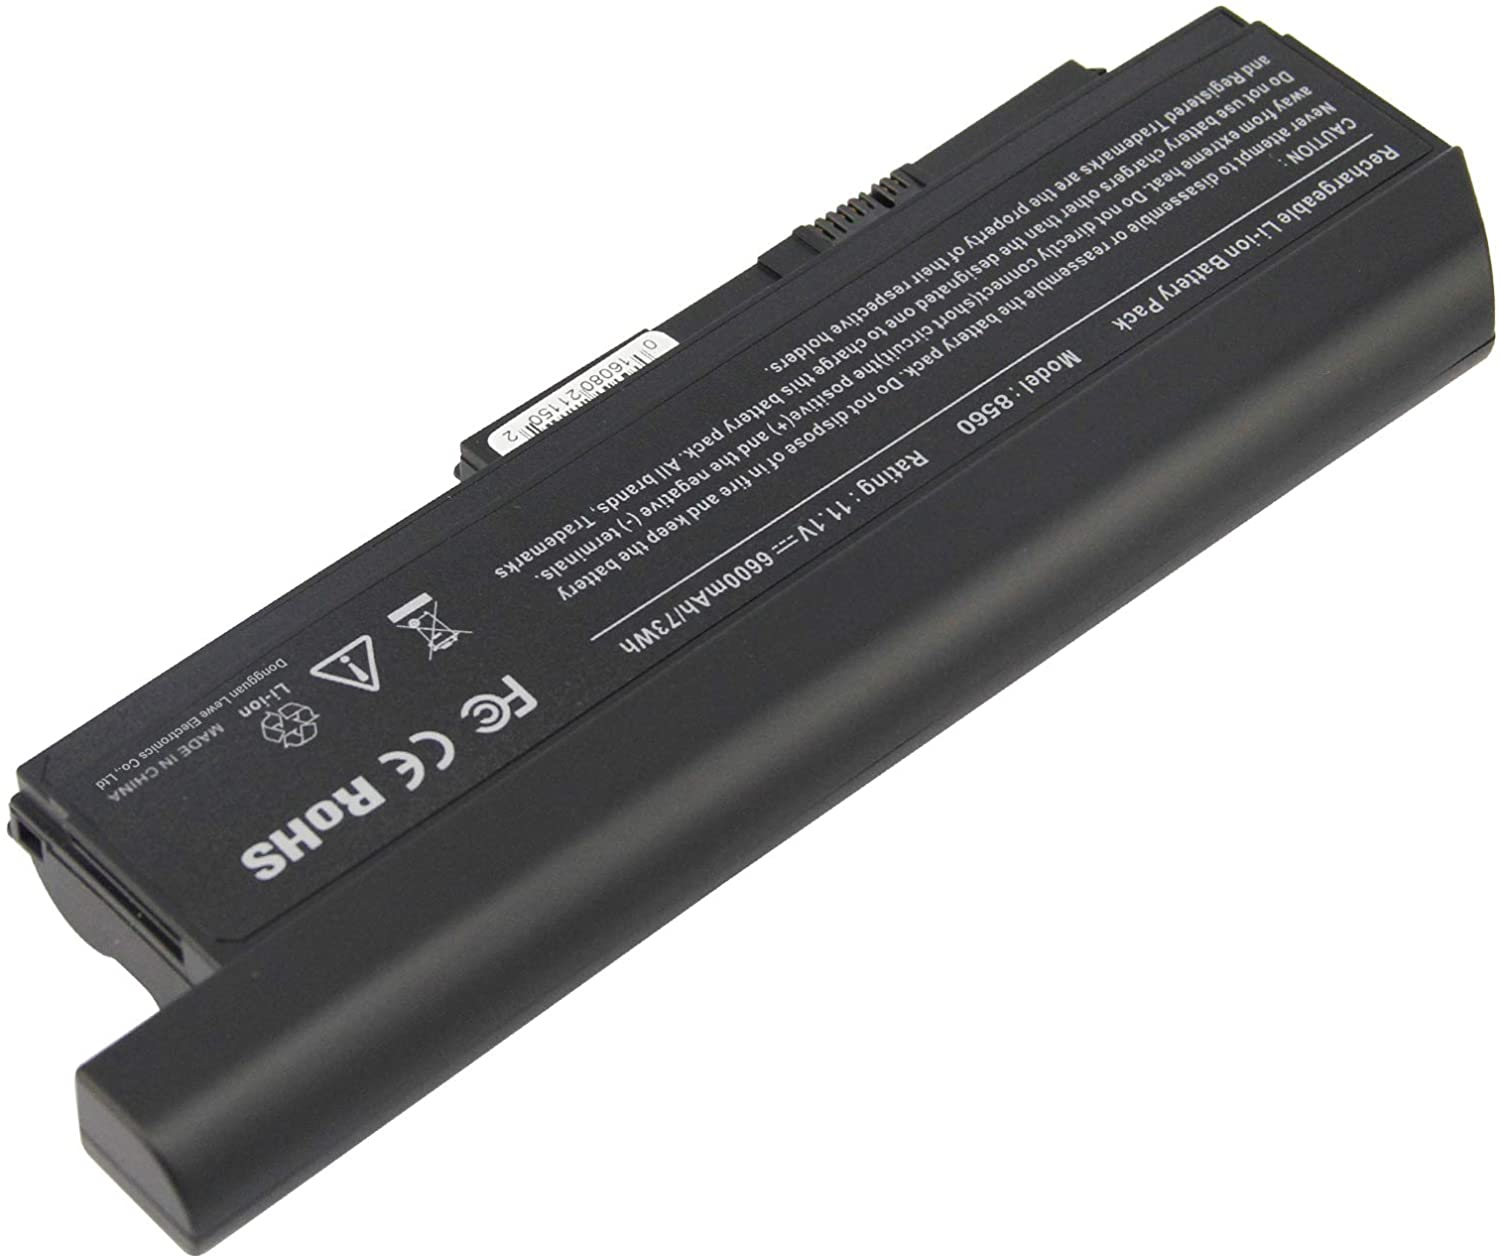 Laptop Battery for Lenovo THINKPAD X220 X220i X220s Series, 0A36281 0A36282 0A36283 42T4863 42Y4864 42T4867 42Y4868 42T4873 42Y4874 42T4901 42T4902 42Y4940